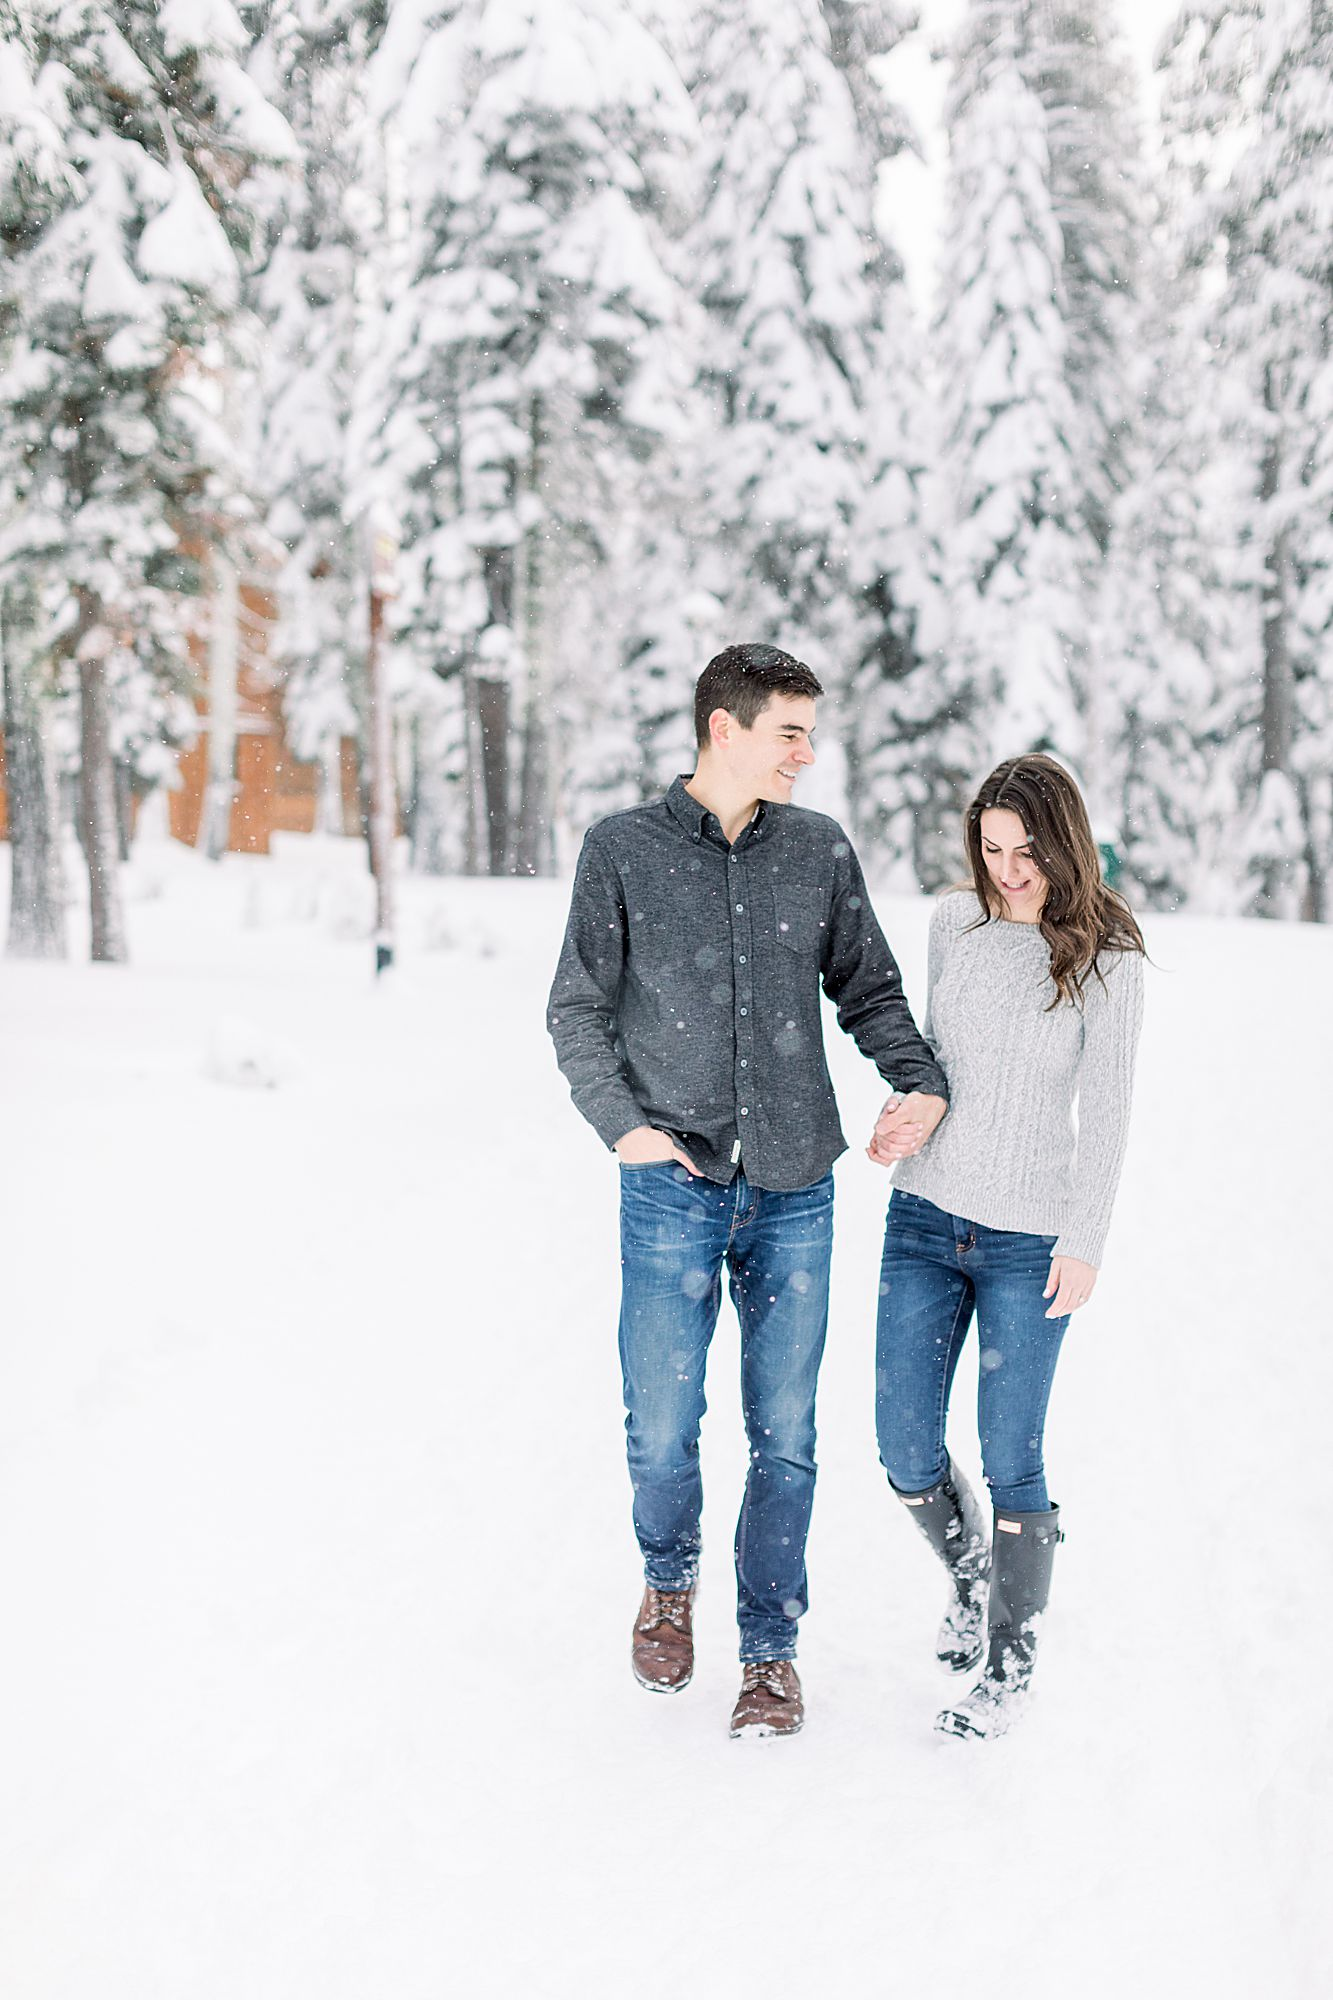 Snowy Tahoe Engagement Session - Alex and Kevin - Ashley Baumgartner - Tahoe Engagement Session - Tahoe Wedding Photographer - Tahoe Engagement Photos - Snow Engagement Photos_0004.jpg